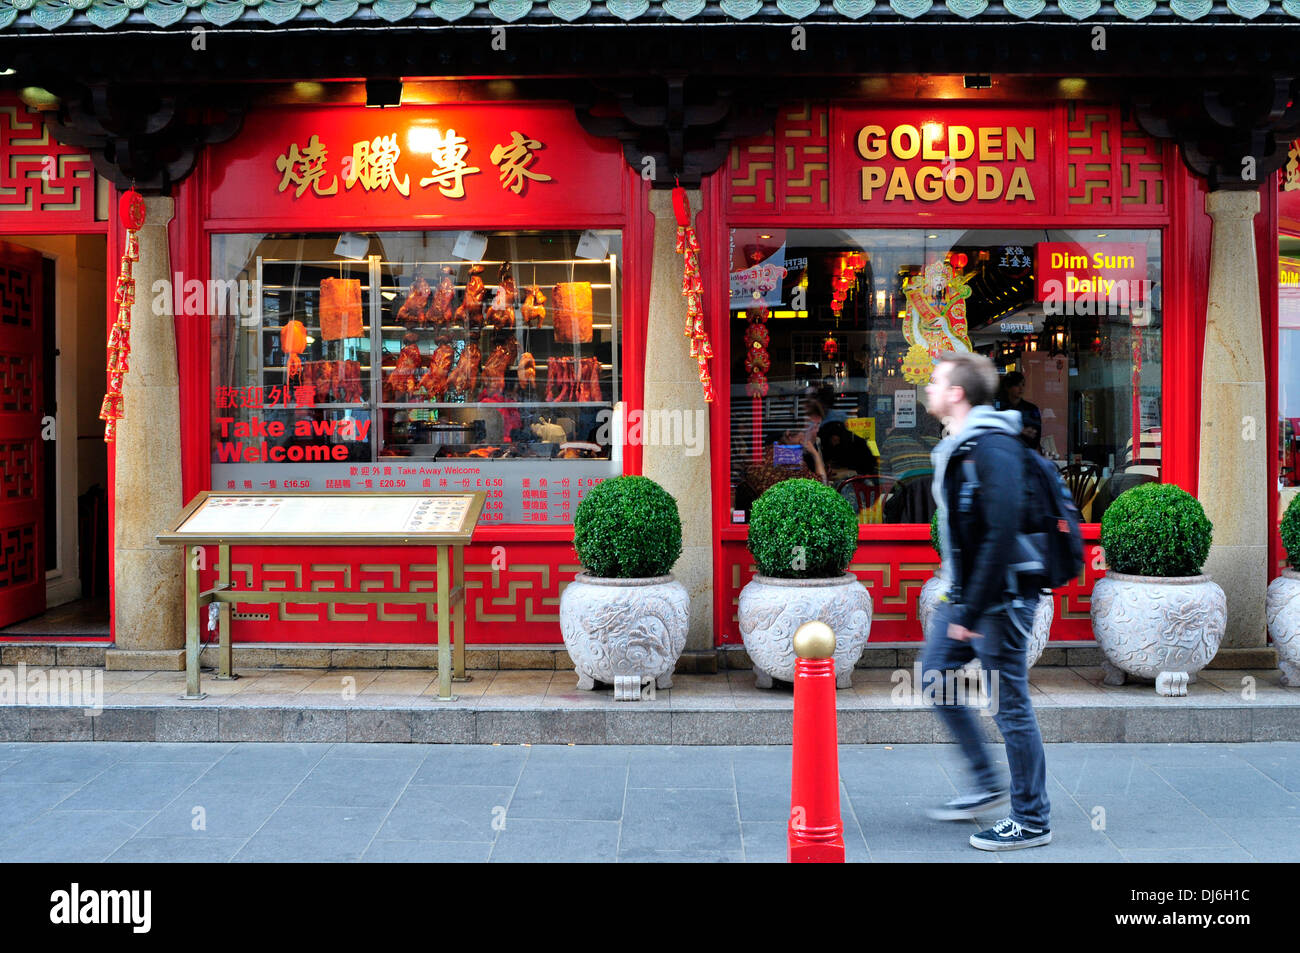 a man walks past the golden pagoda restaurant in china town london stock photo royalty free. Black Bedroom Furniture Sets. Home Design Ideas